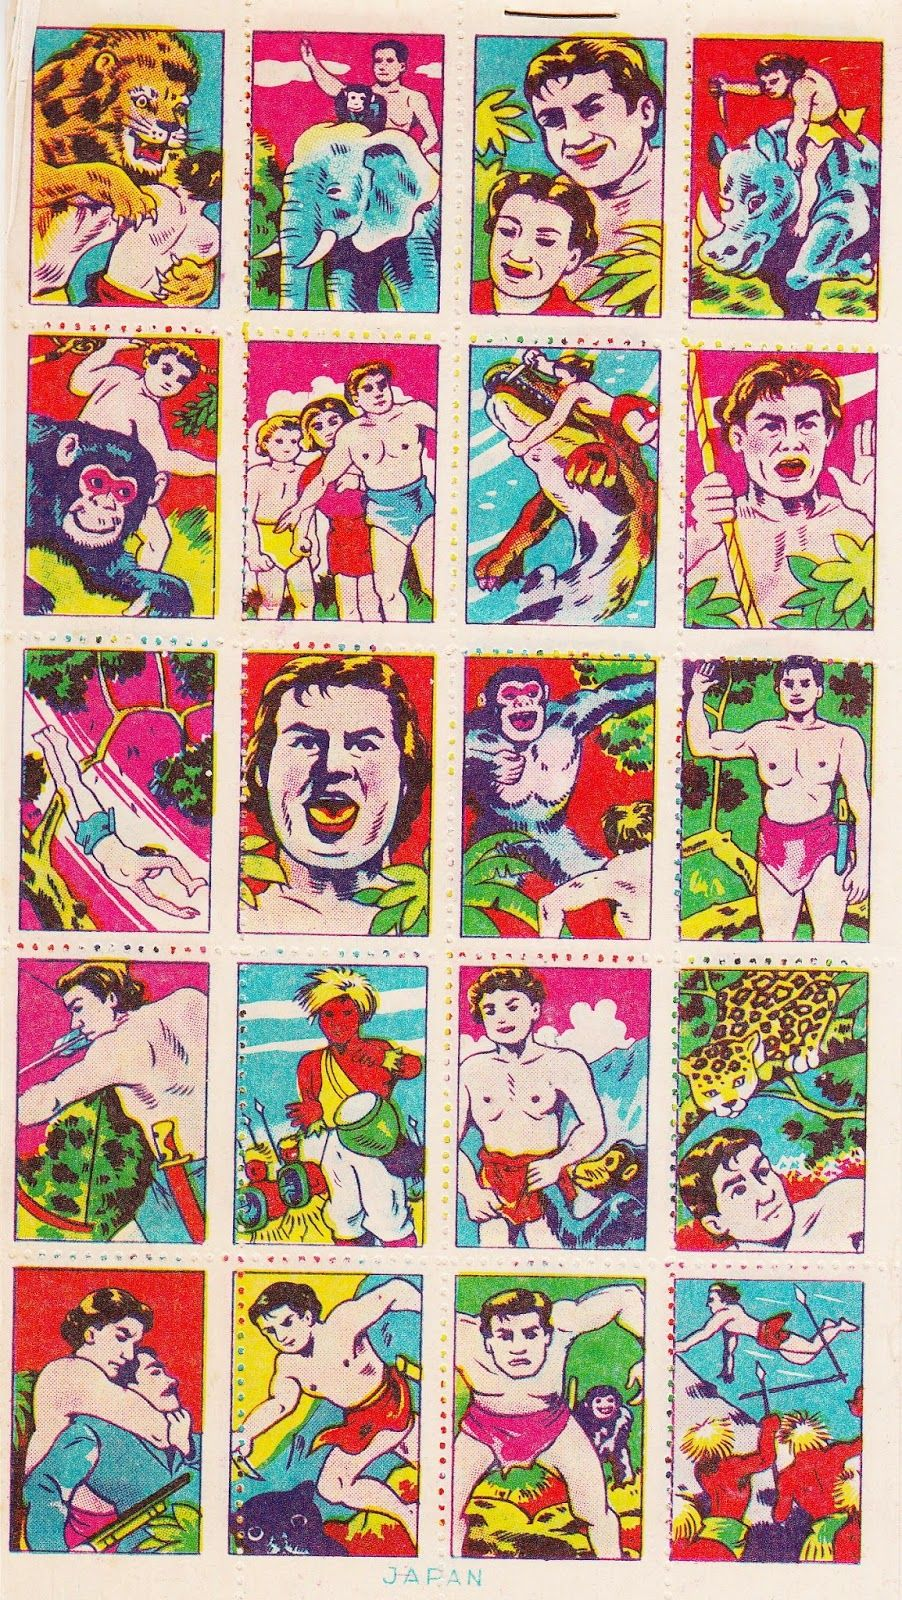 New Forever Stamps! Post-war Japan Transfer Stickers